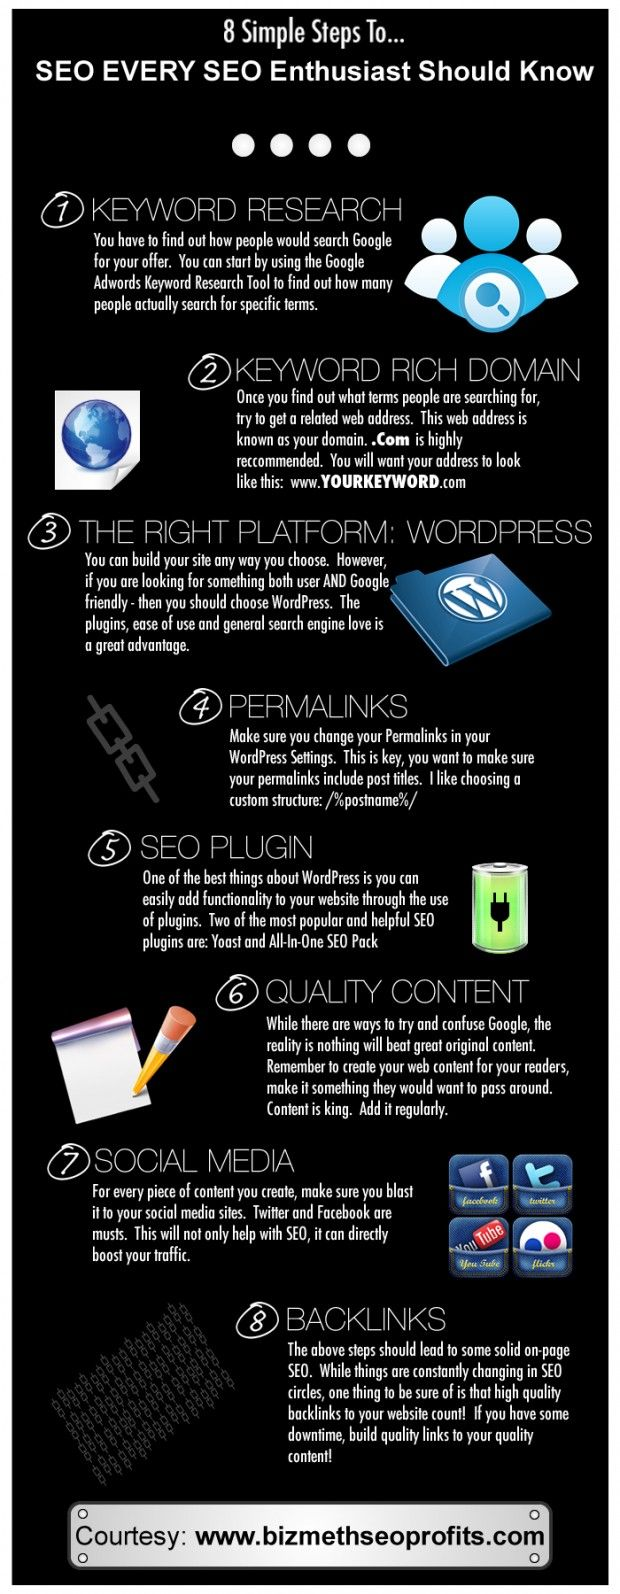 8 Simple SEO Steps Every #SEO Enthusiast Should Know #infographic (repinned by @Ricardo Sudario Sudario Llera)